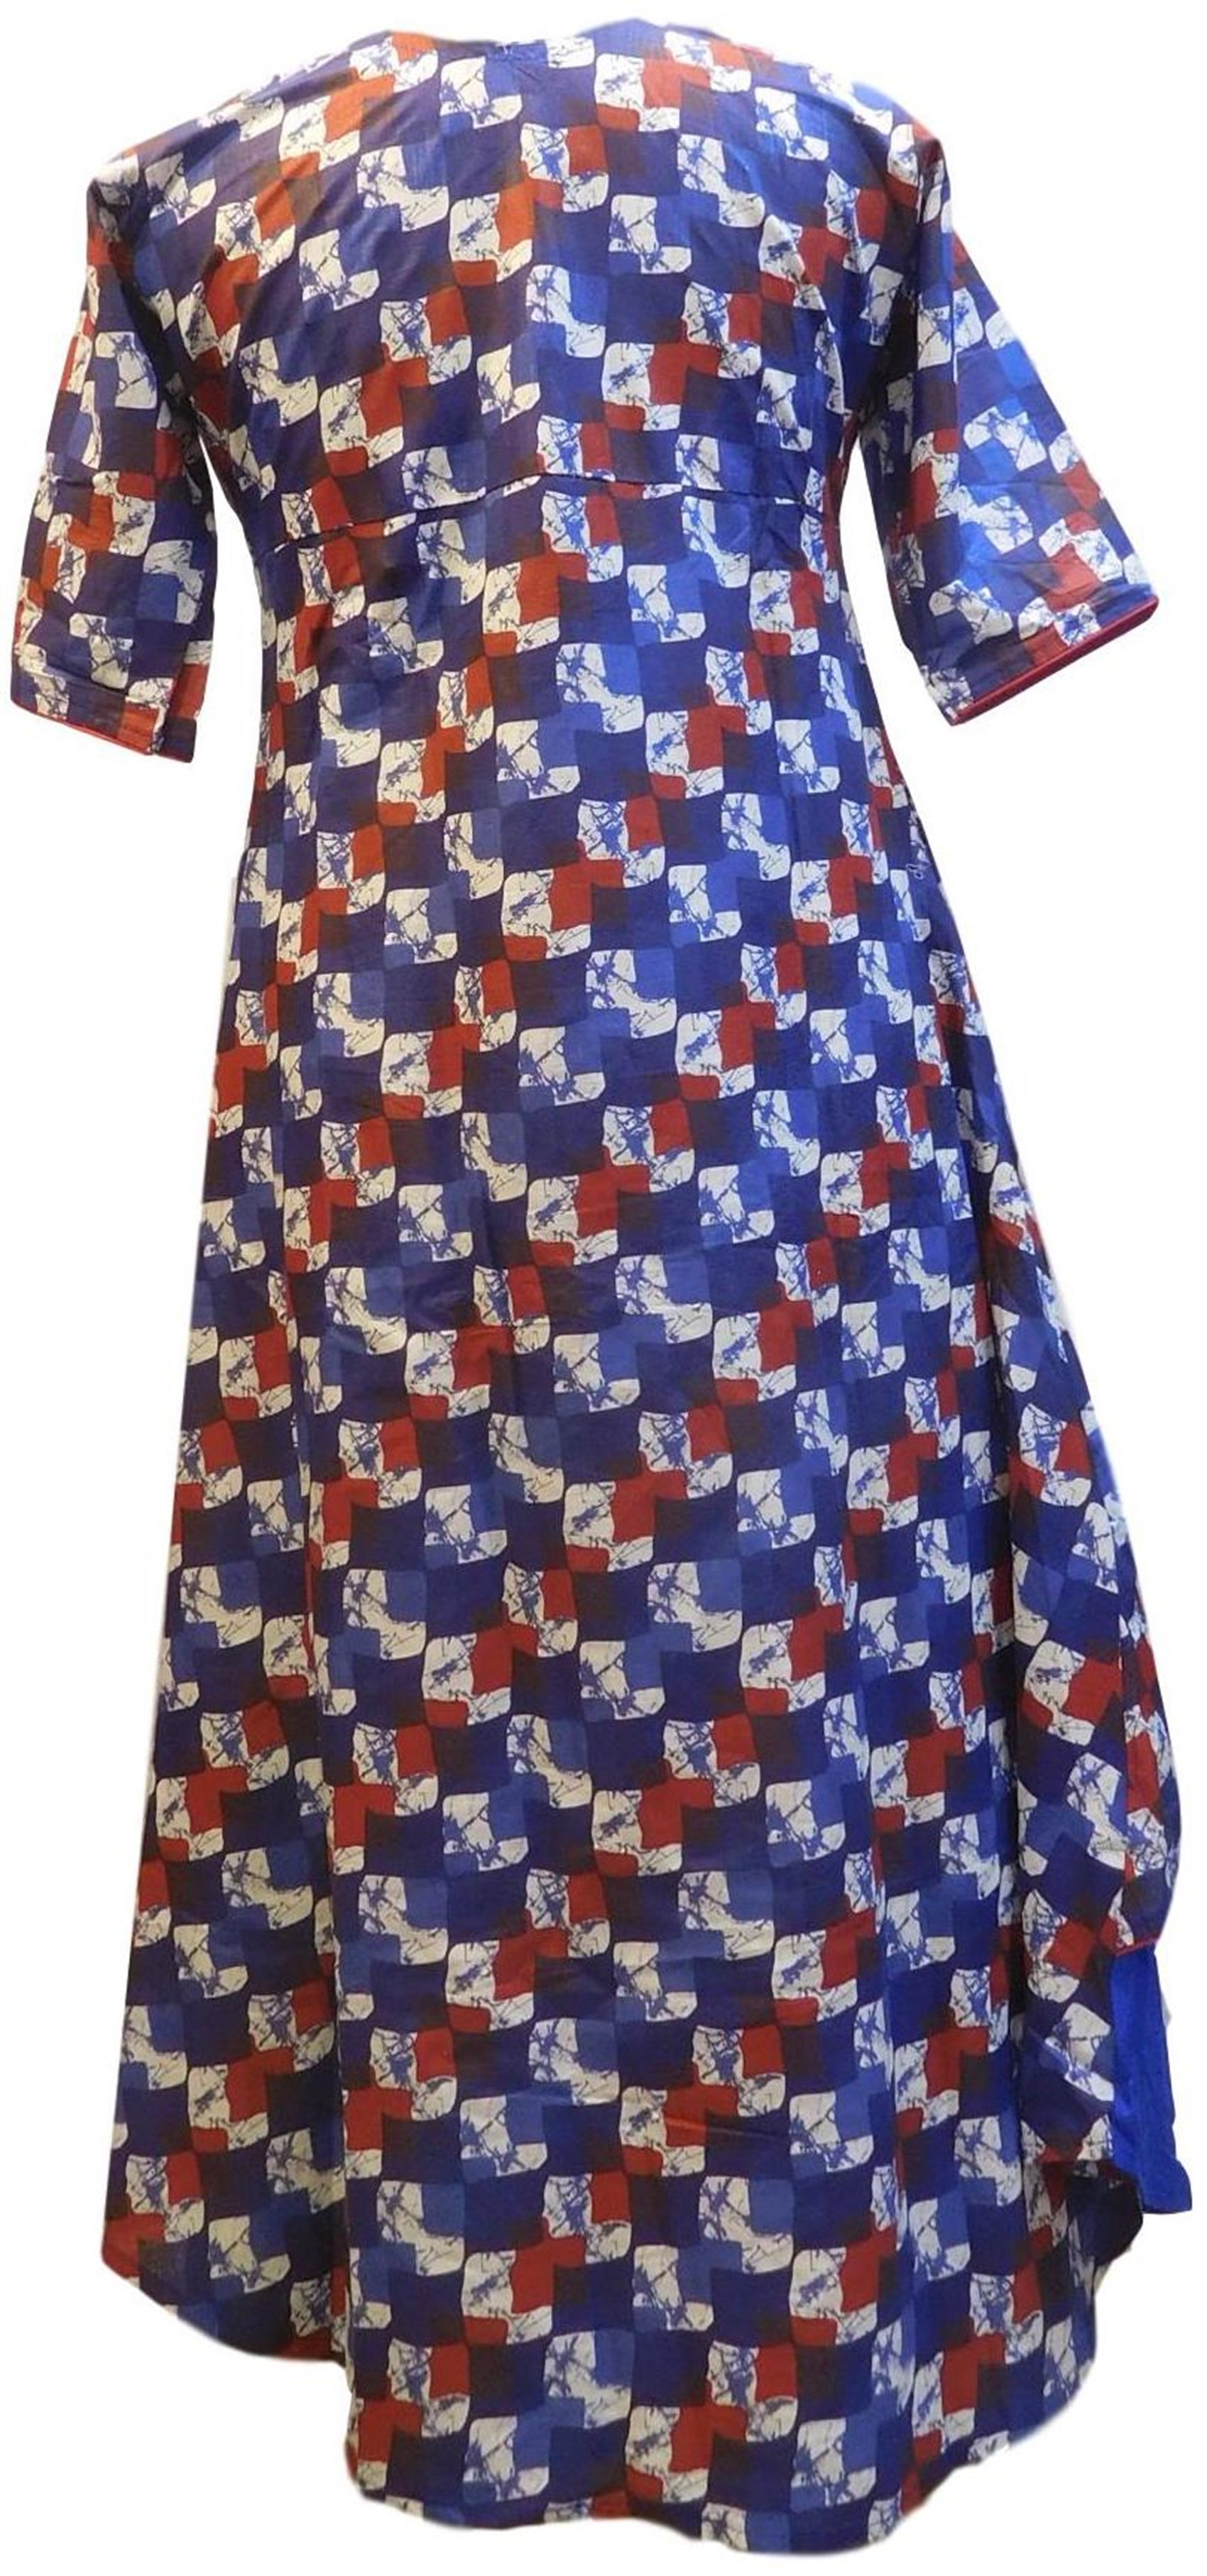 Blue Red & White Designer Silk (Rayon) Printed Butique Style Jacket Kurti Kurta D323